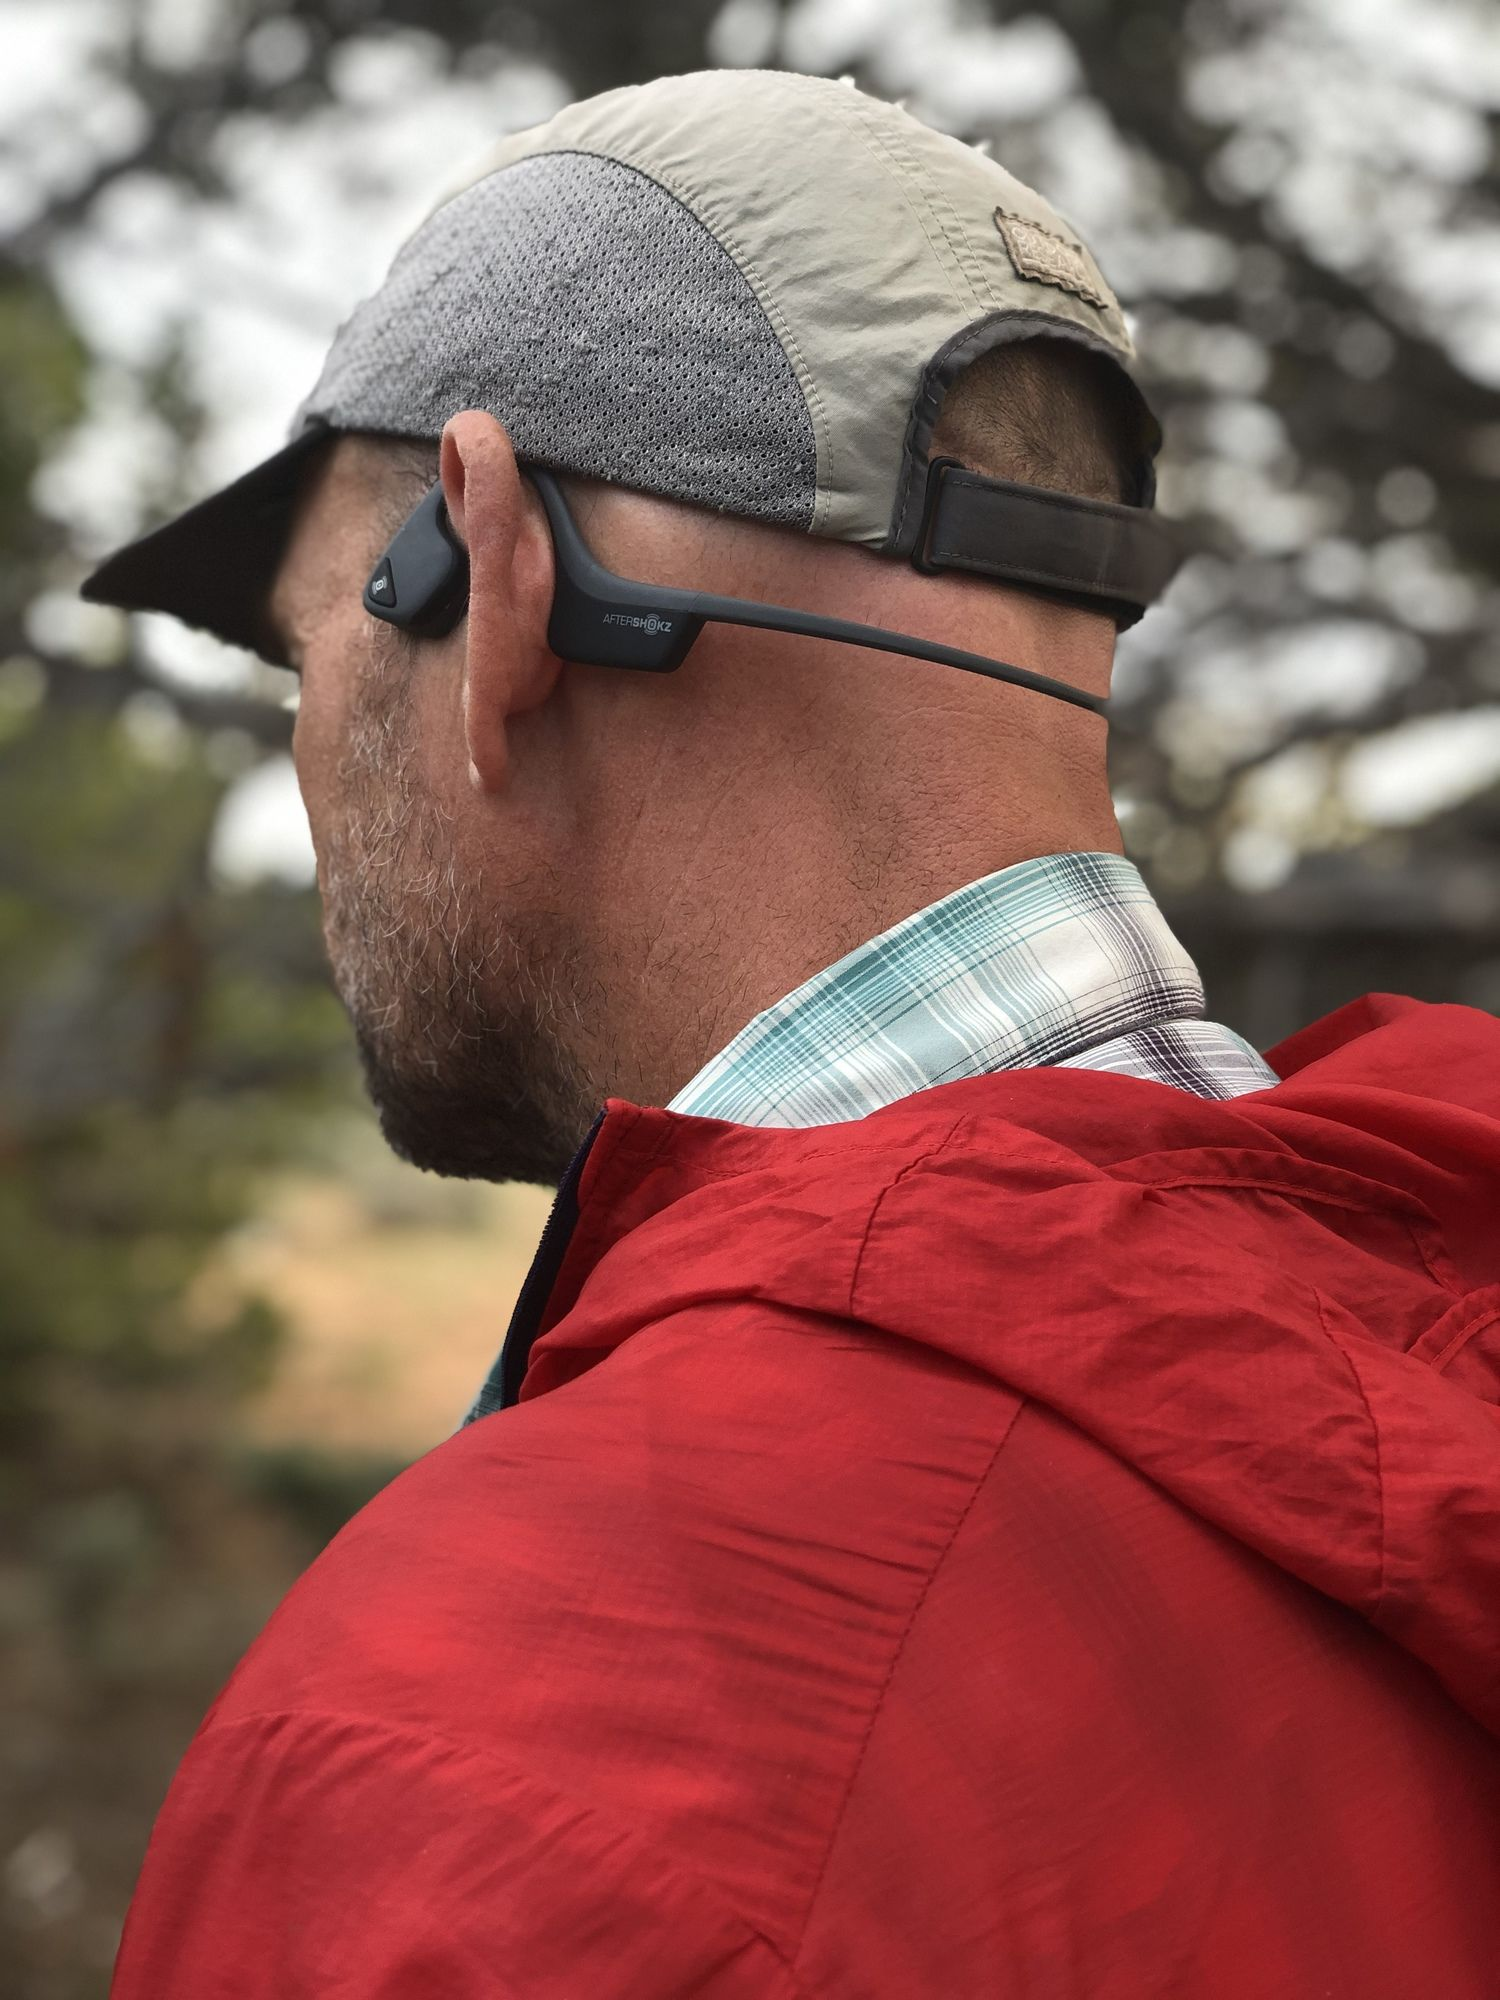 The Aftershokz Trekz Air headphones are our pick for Situational Awareness. They work by not covering your eardrums, meaning you can still hear that rattlesnake, car approaching, or your hiking partner calling for help.